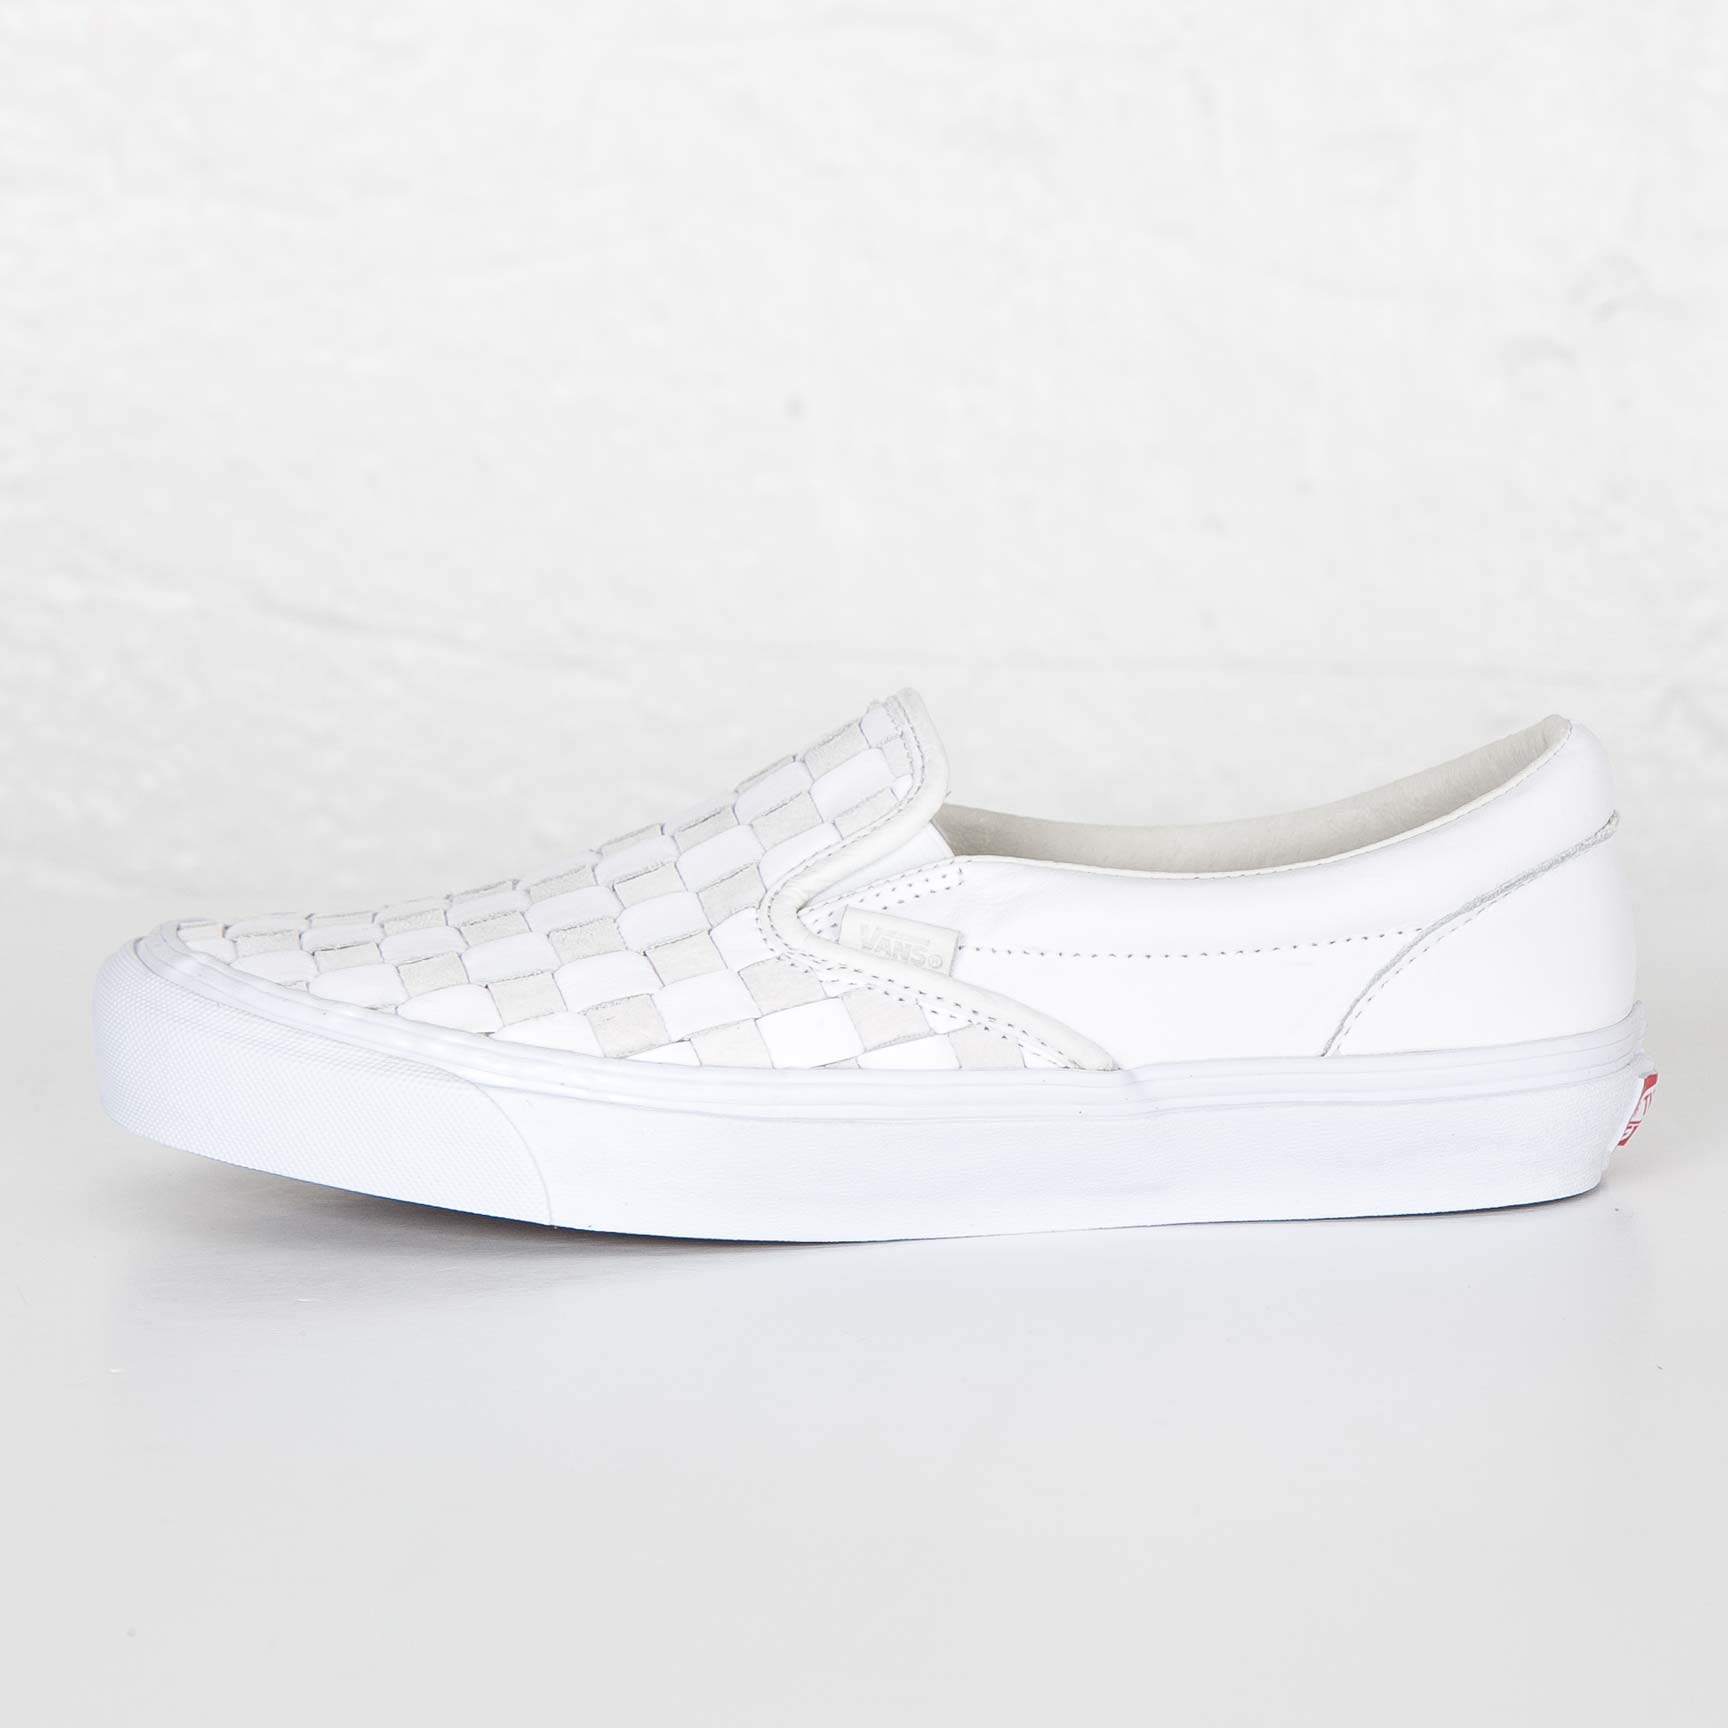 1160a03dc4 Vans OG Classic Slip-On LX. Article no. Vudfim2. (Woven Leather) 50th  Checkerboard White. Men